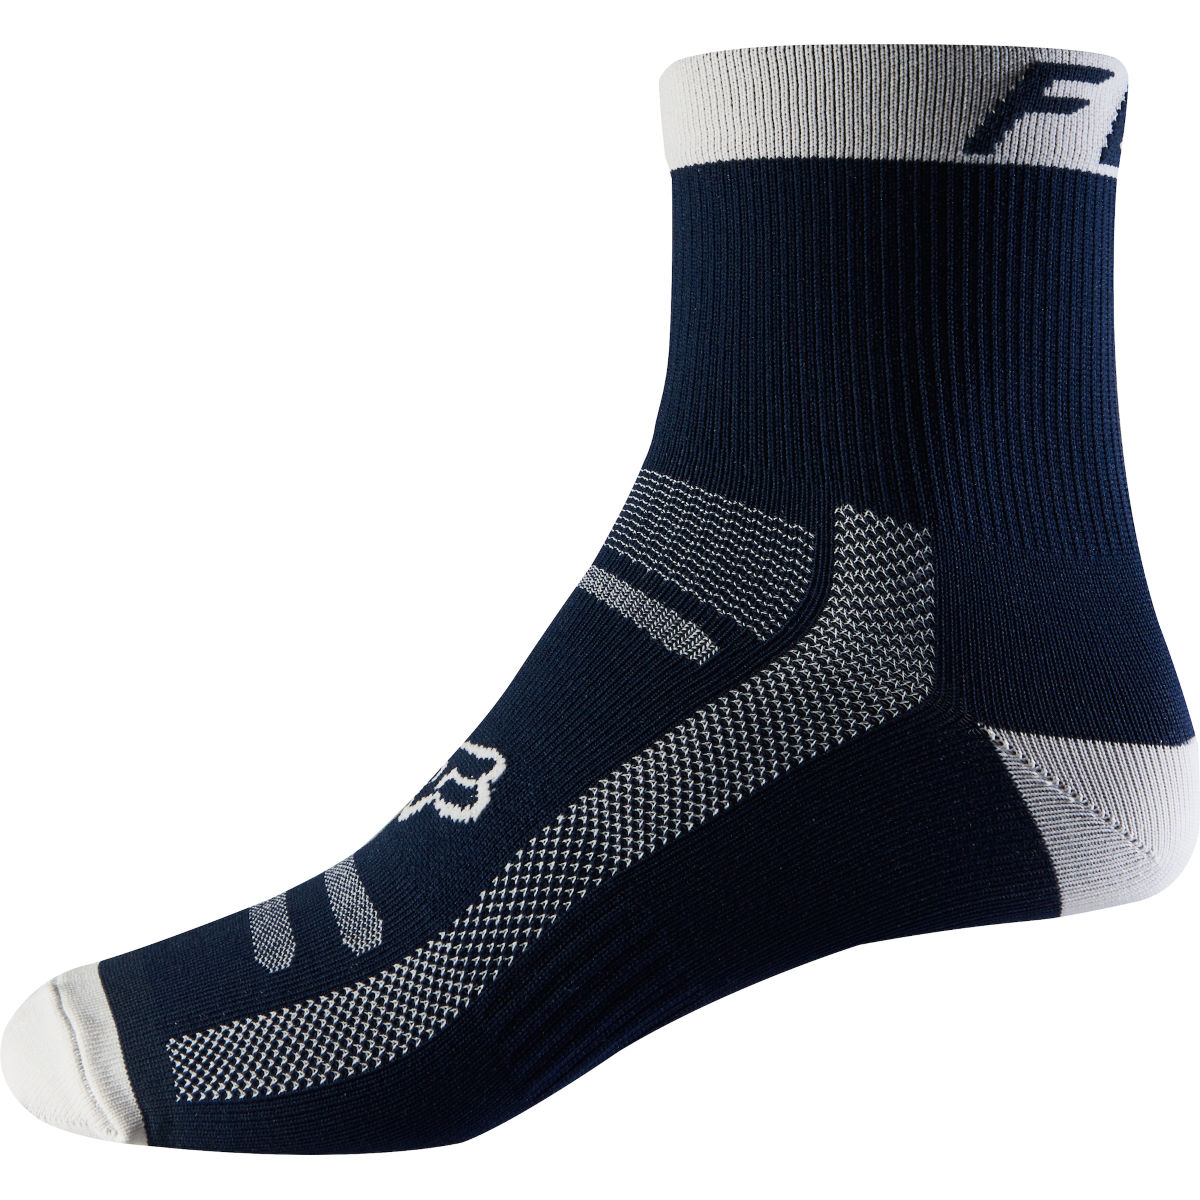 "Calcetines Fox Racing 6"" - Calcetines"